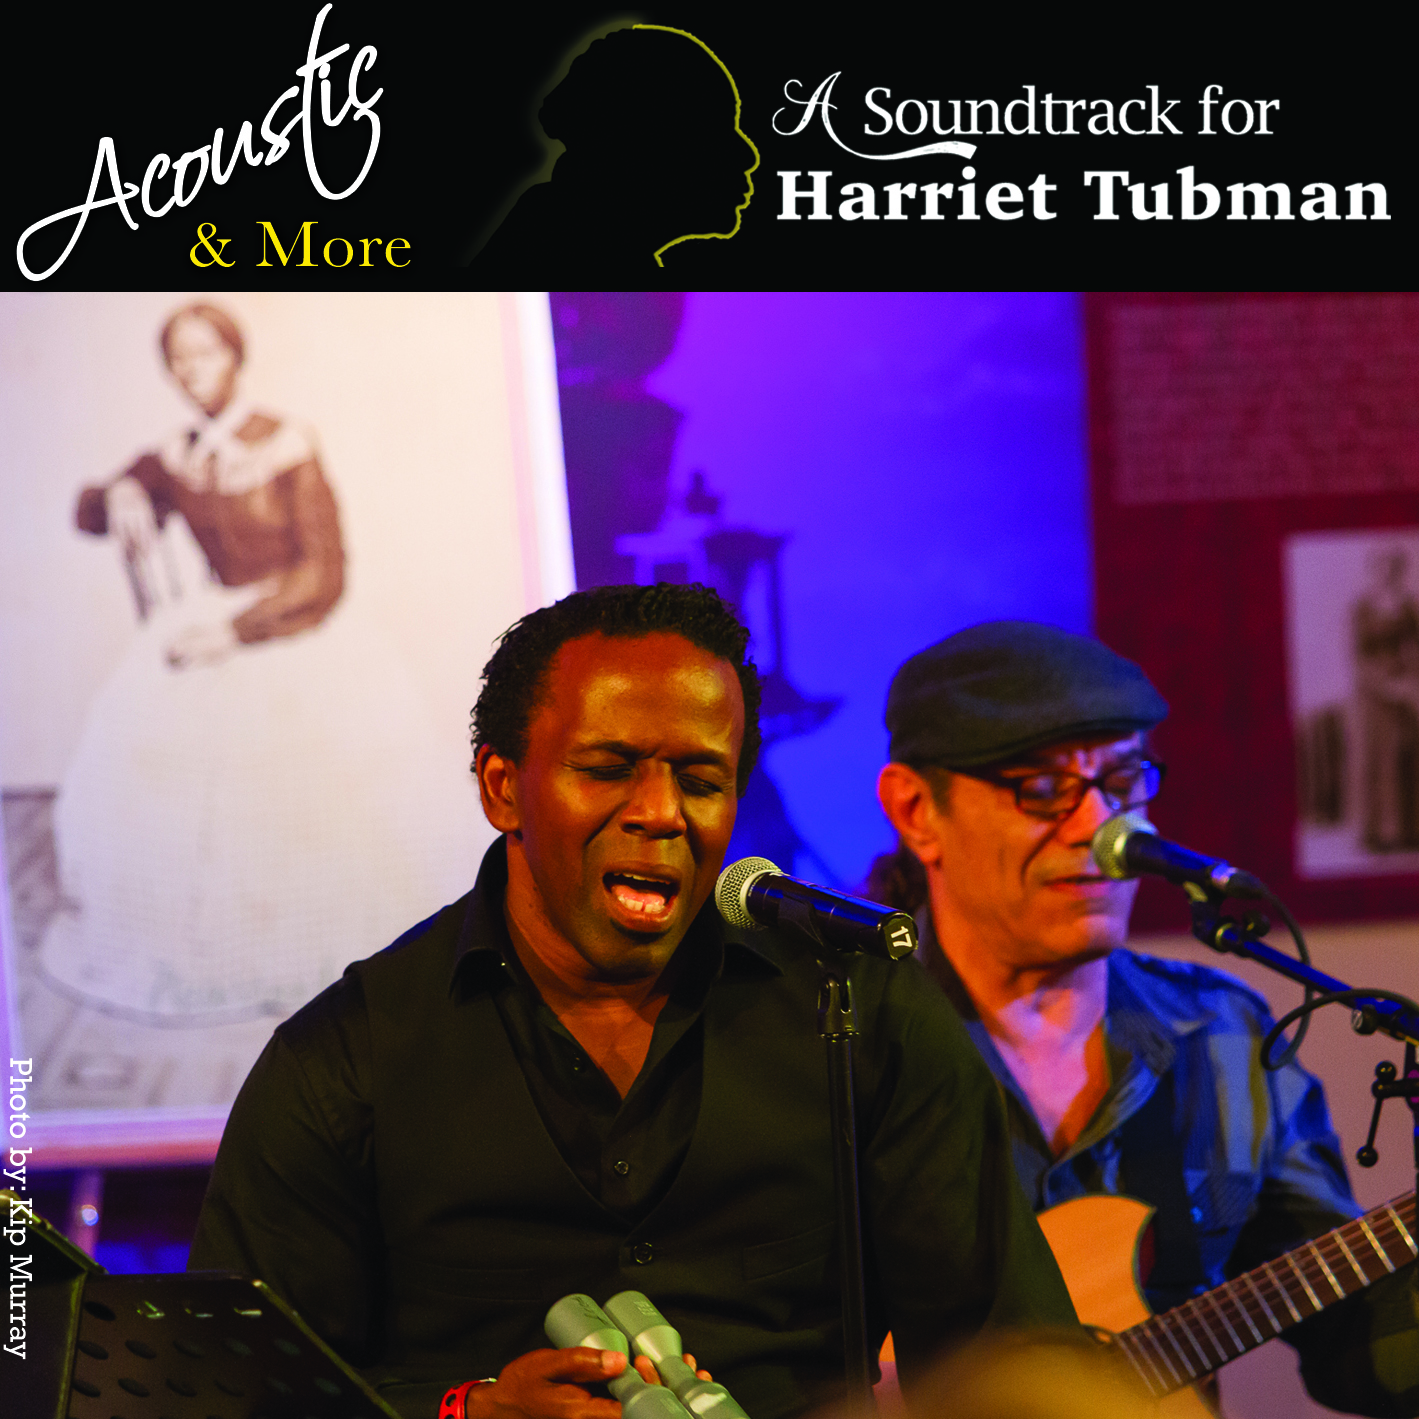 Album Cover - Square - A Soundtrack for Harriet Tubman Acoustic and More